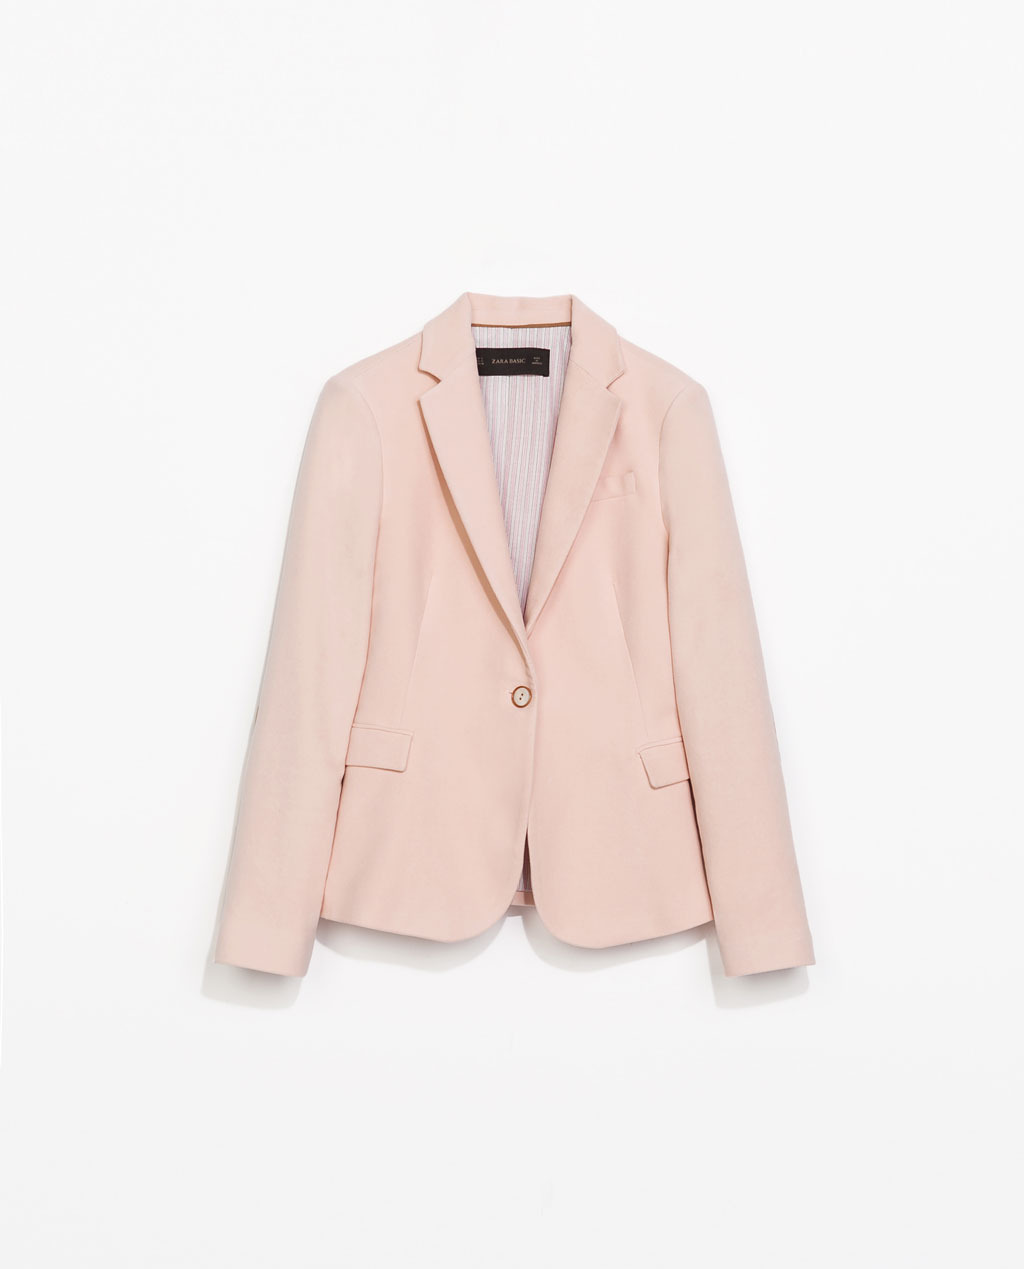 Blazer With Elbow Patches - pattern: plain; style: single breasted blazer; collar: standard lapel/rever collar; predominant colour: pink; secondary colour: tan; occasions: casual, creative work; length: standard; fit: tailored/fitted; fibres: cotton - 100%; sleeve length: long sleeve; sleeve style: standard; texture group: cotton feel fabrics; collar break: low/open; pattern type: fabric; trends: sorbet shades; season: s/s 2014